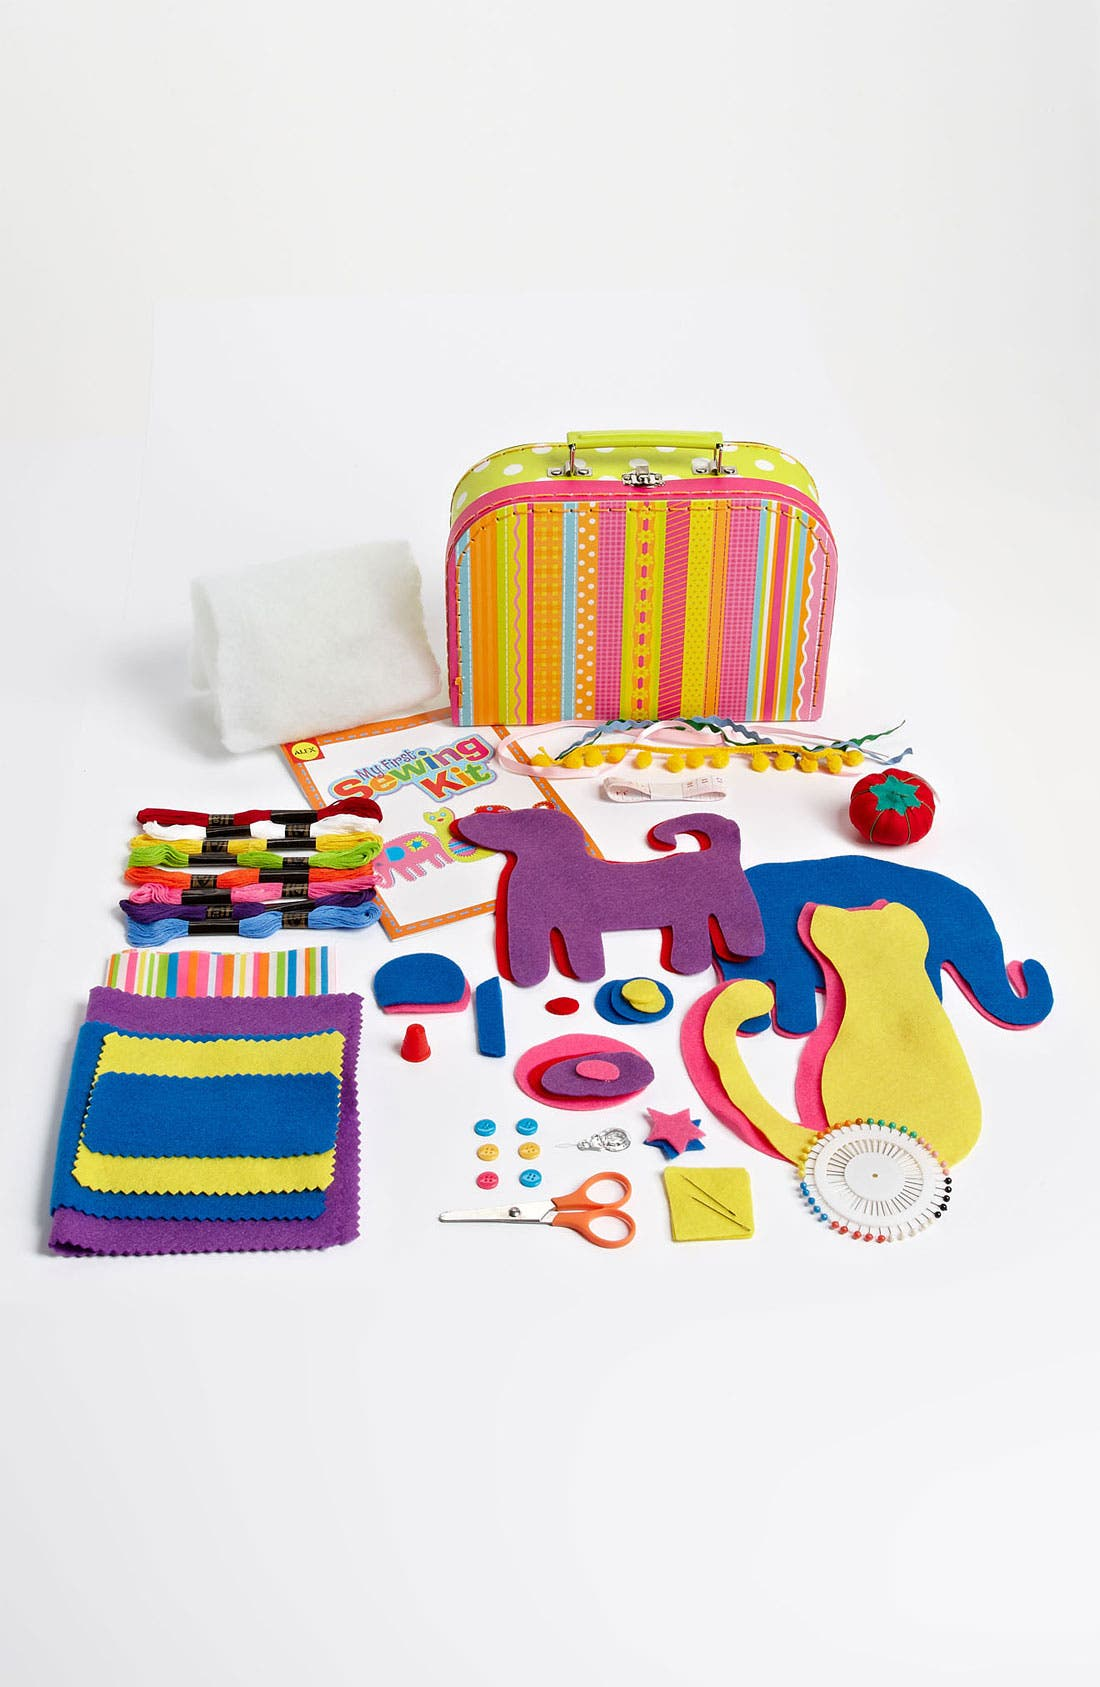 Main Image - Alex® Toys 'My First Sewing Kit' Craft Kit